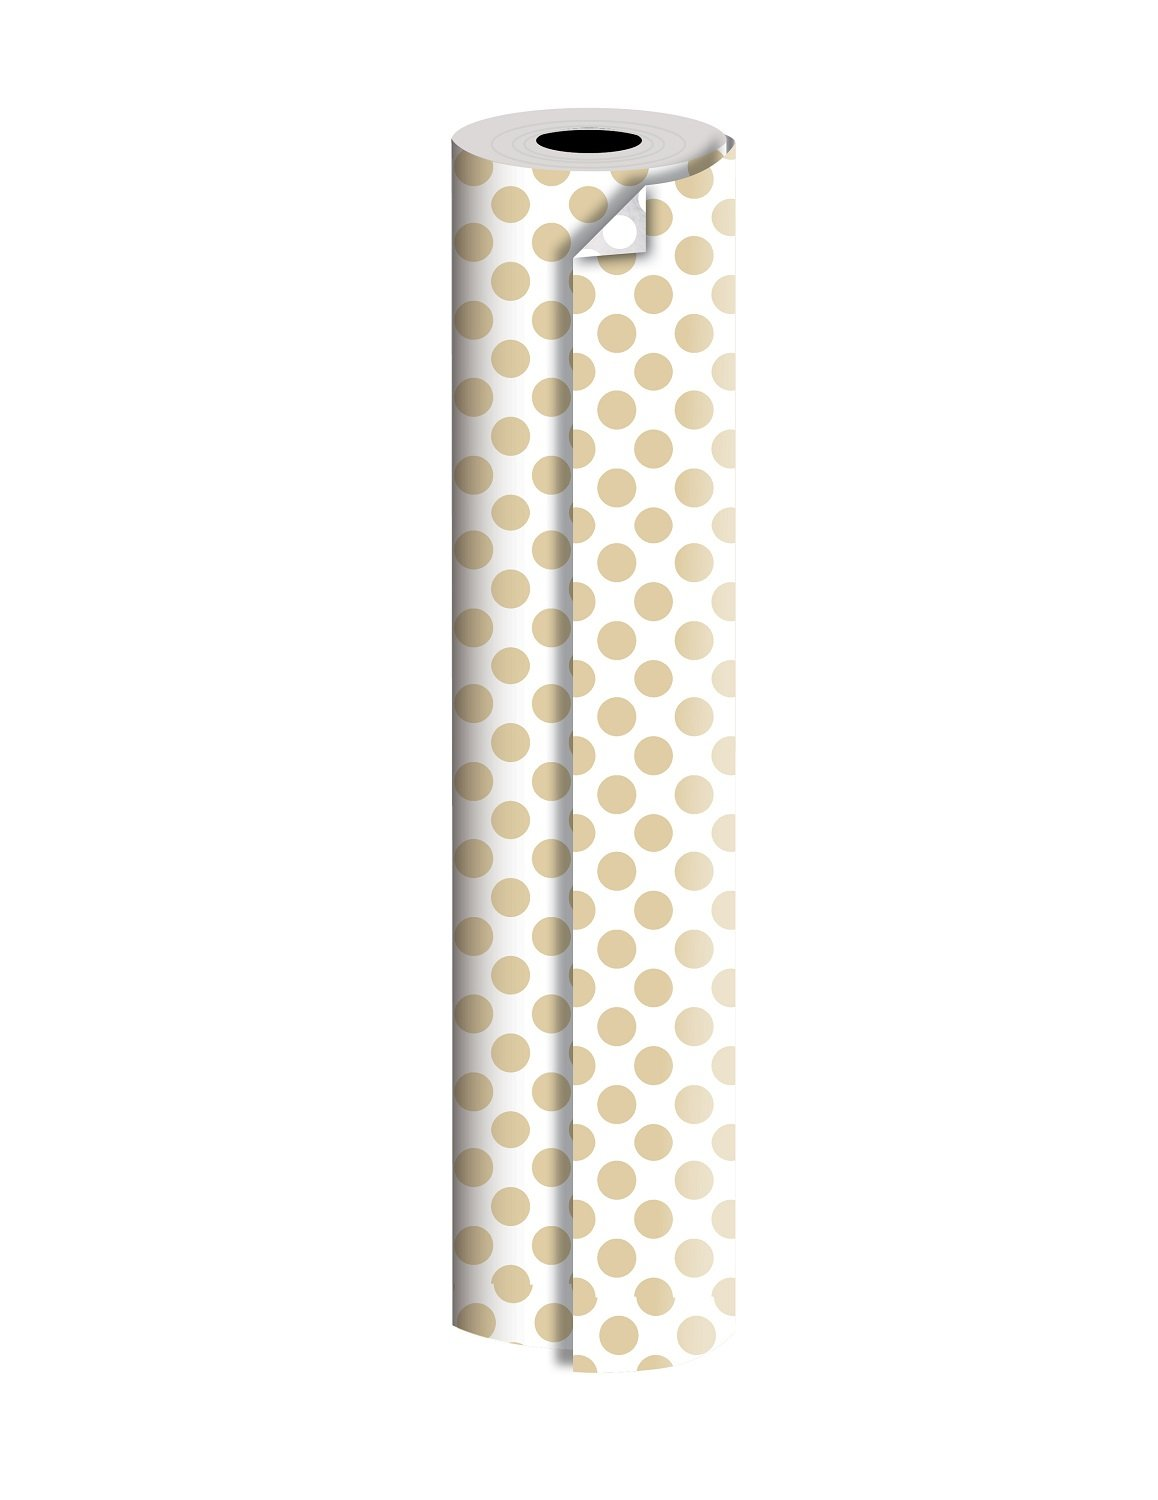 Jillson Roberts Bulk 1/2 Ream Double-Sided Reversible Gift Wrap Available in 12 Different Color Combinations, 30'' x 417', Gold and Silver Dots